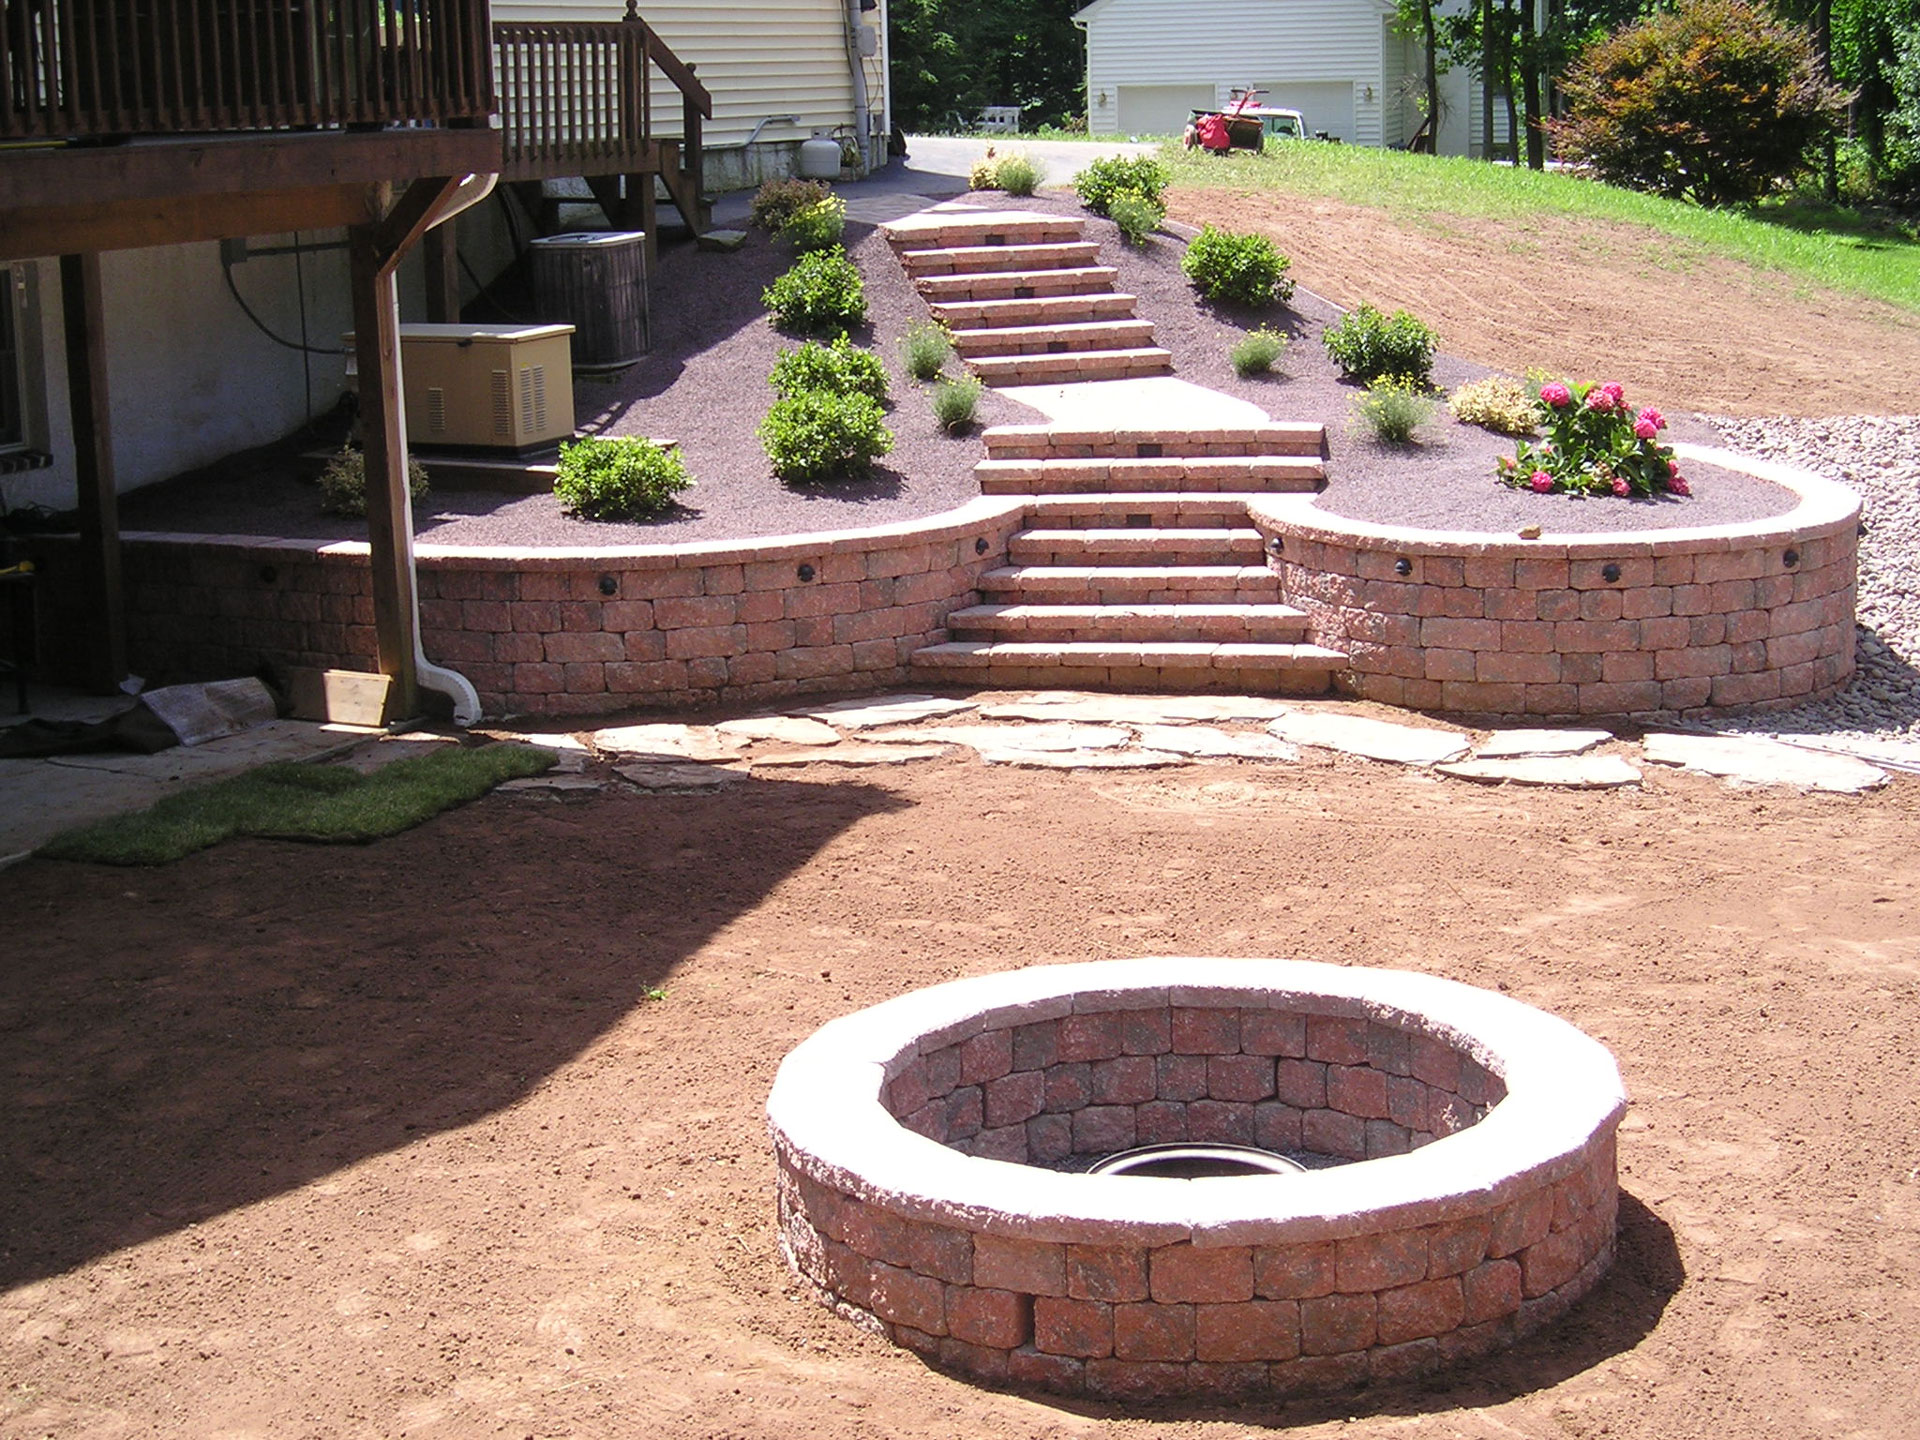 Buckwalter Landscaping, serving Berks County, PA - Patio construction